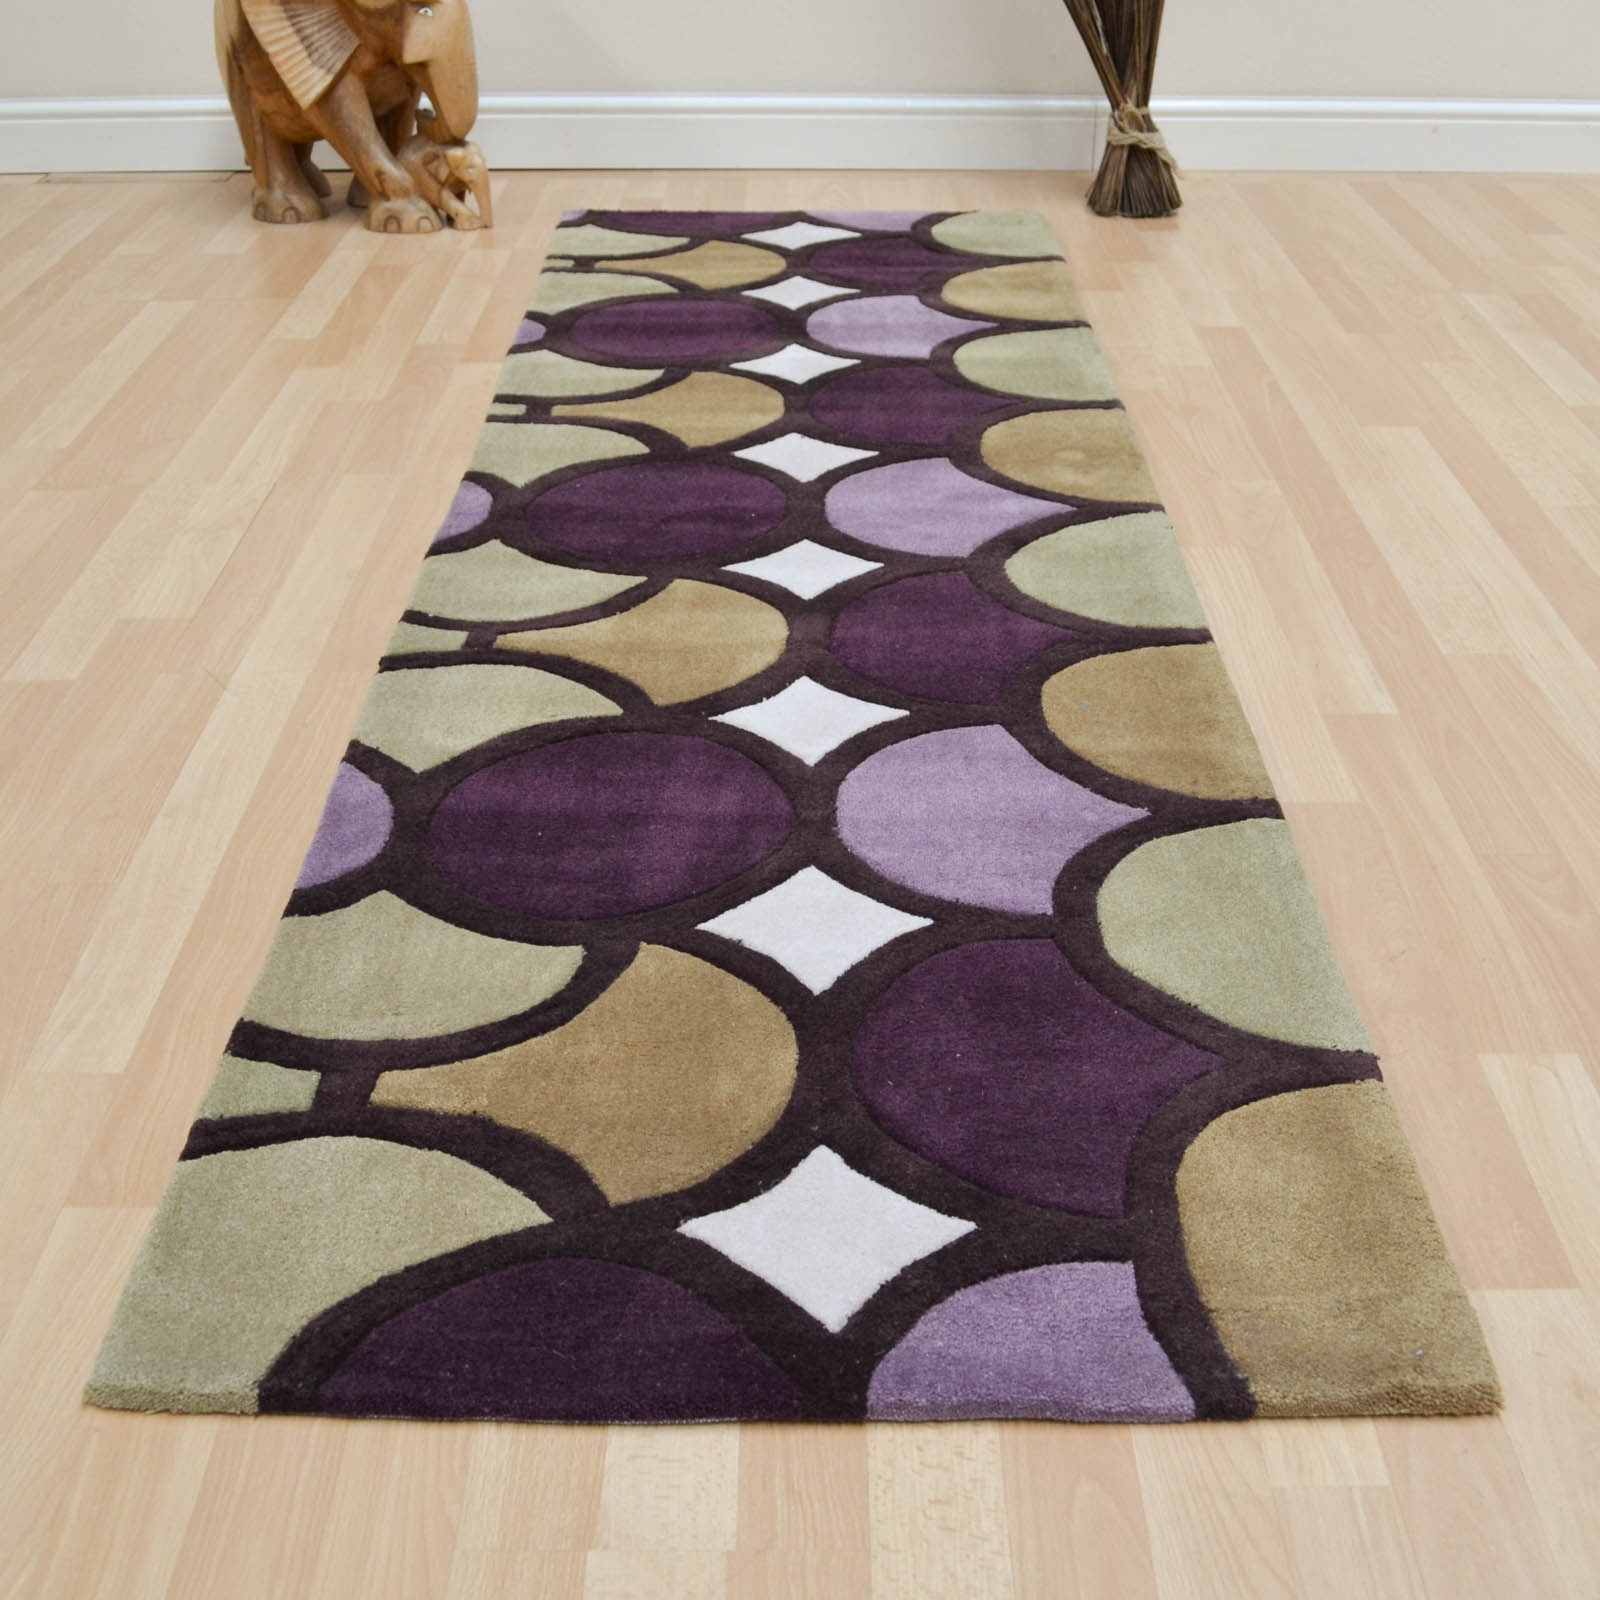 Hall Runner Rugs Uk Roselawnlutheran With Regard To Cheap Hallway Runners (View 15 of 20)